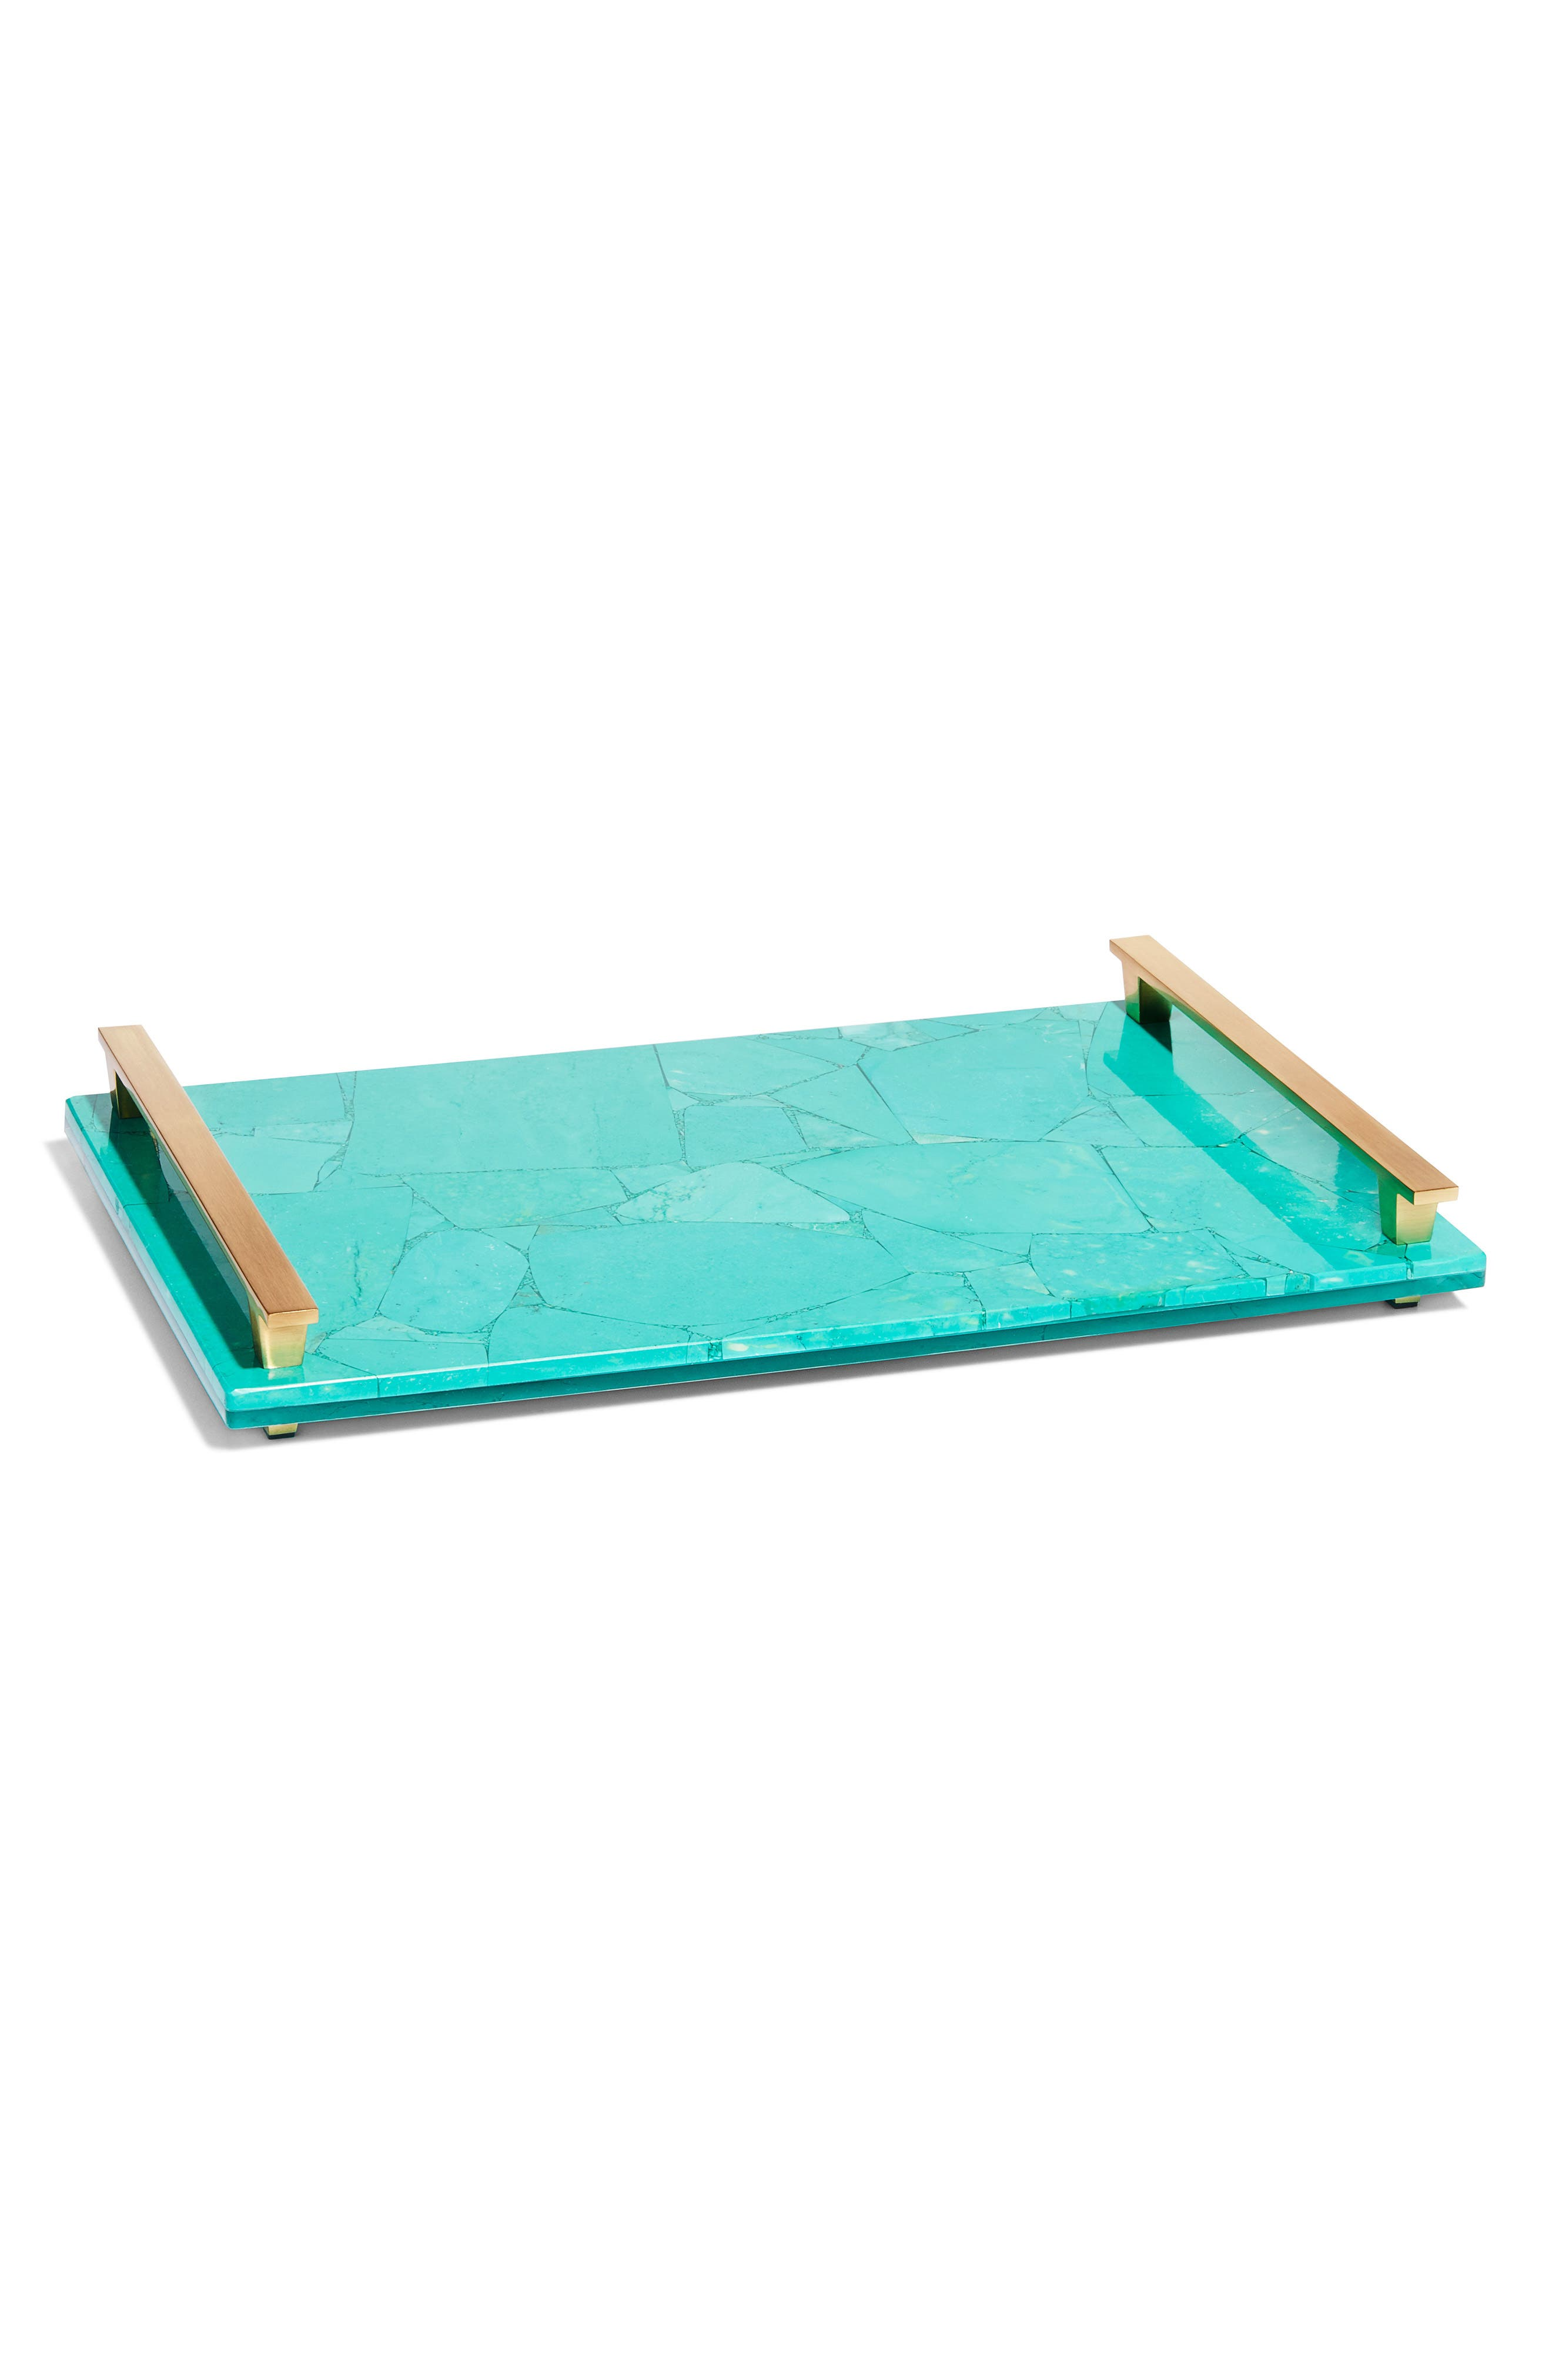 Stone Slab Tray,                         Main,                         color, Variegated Teal